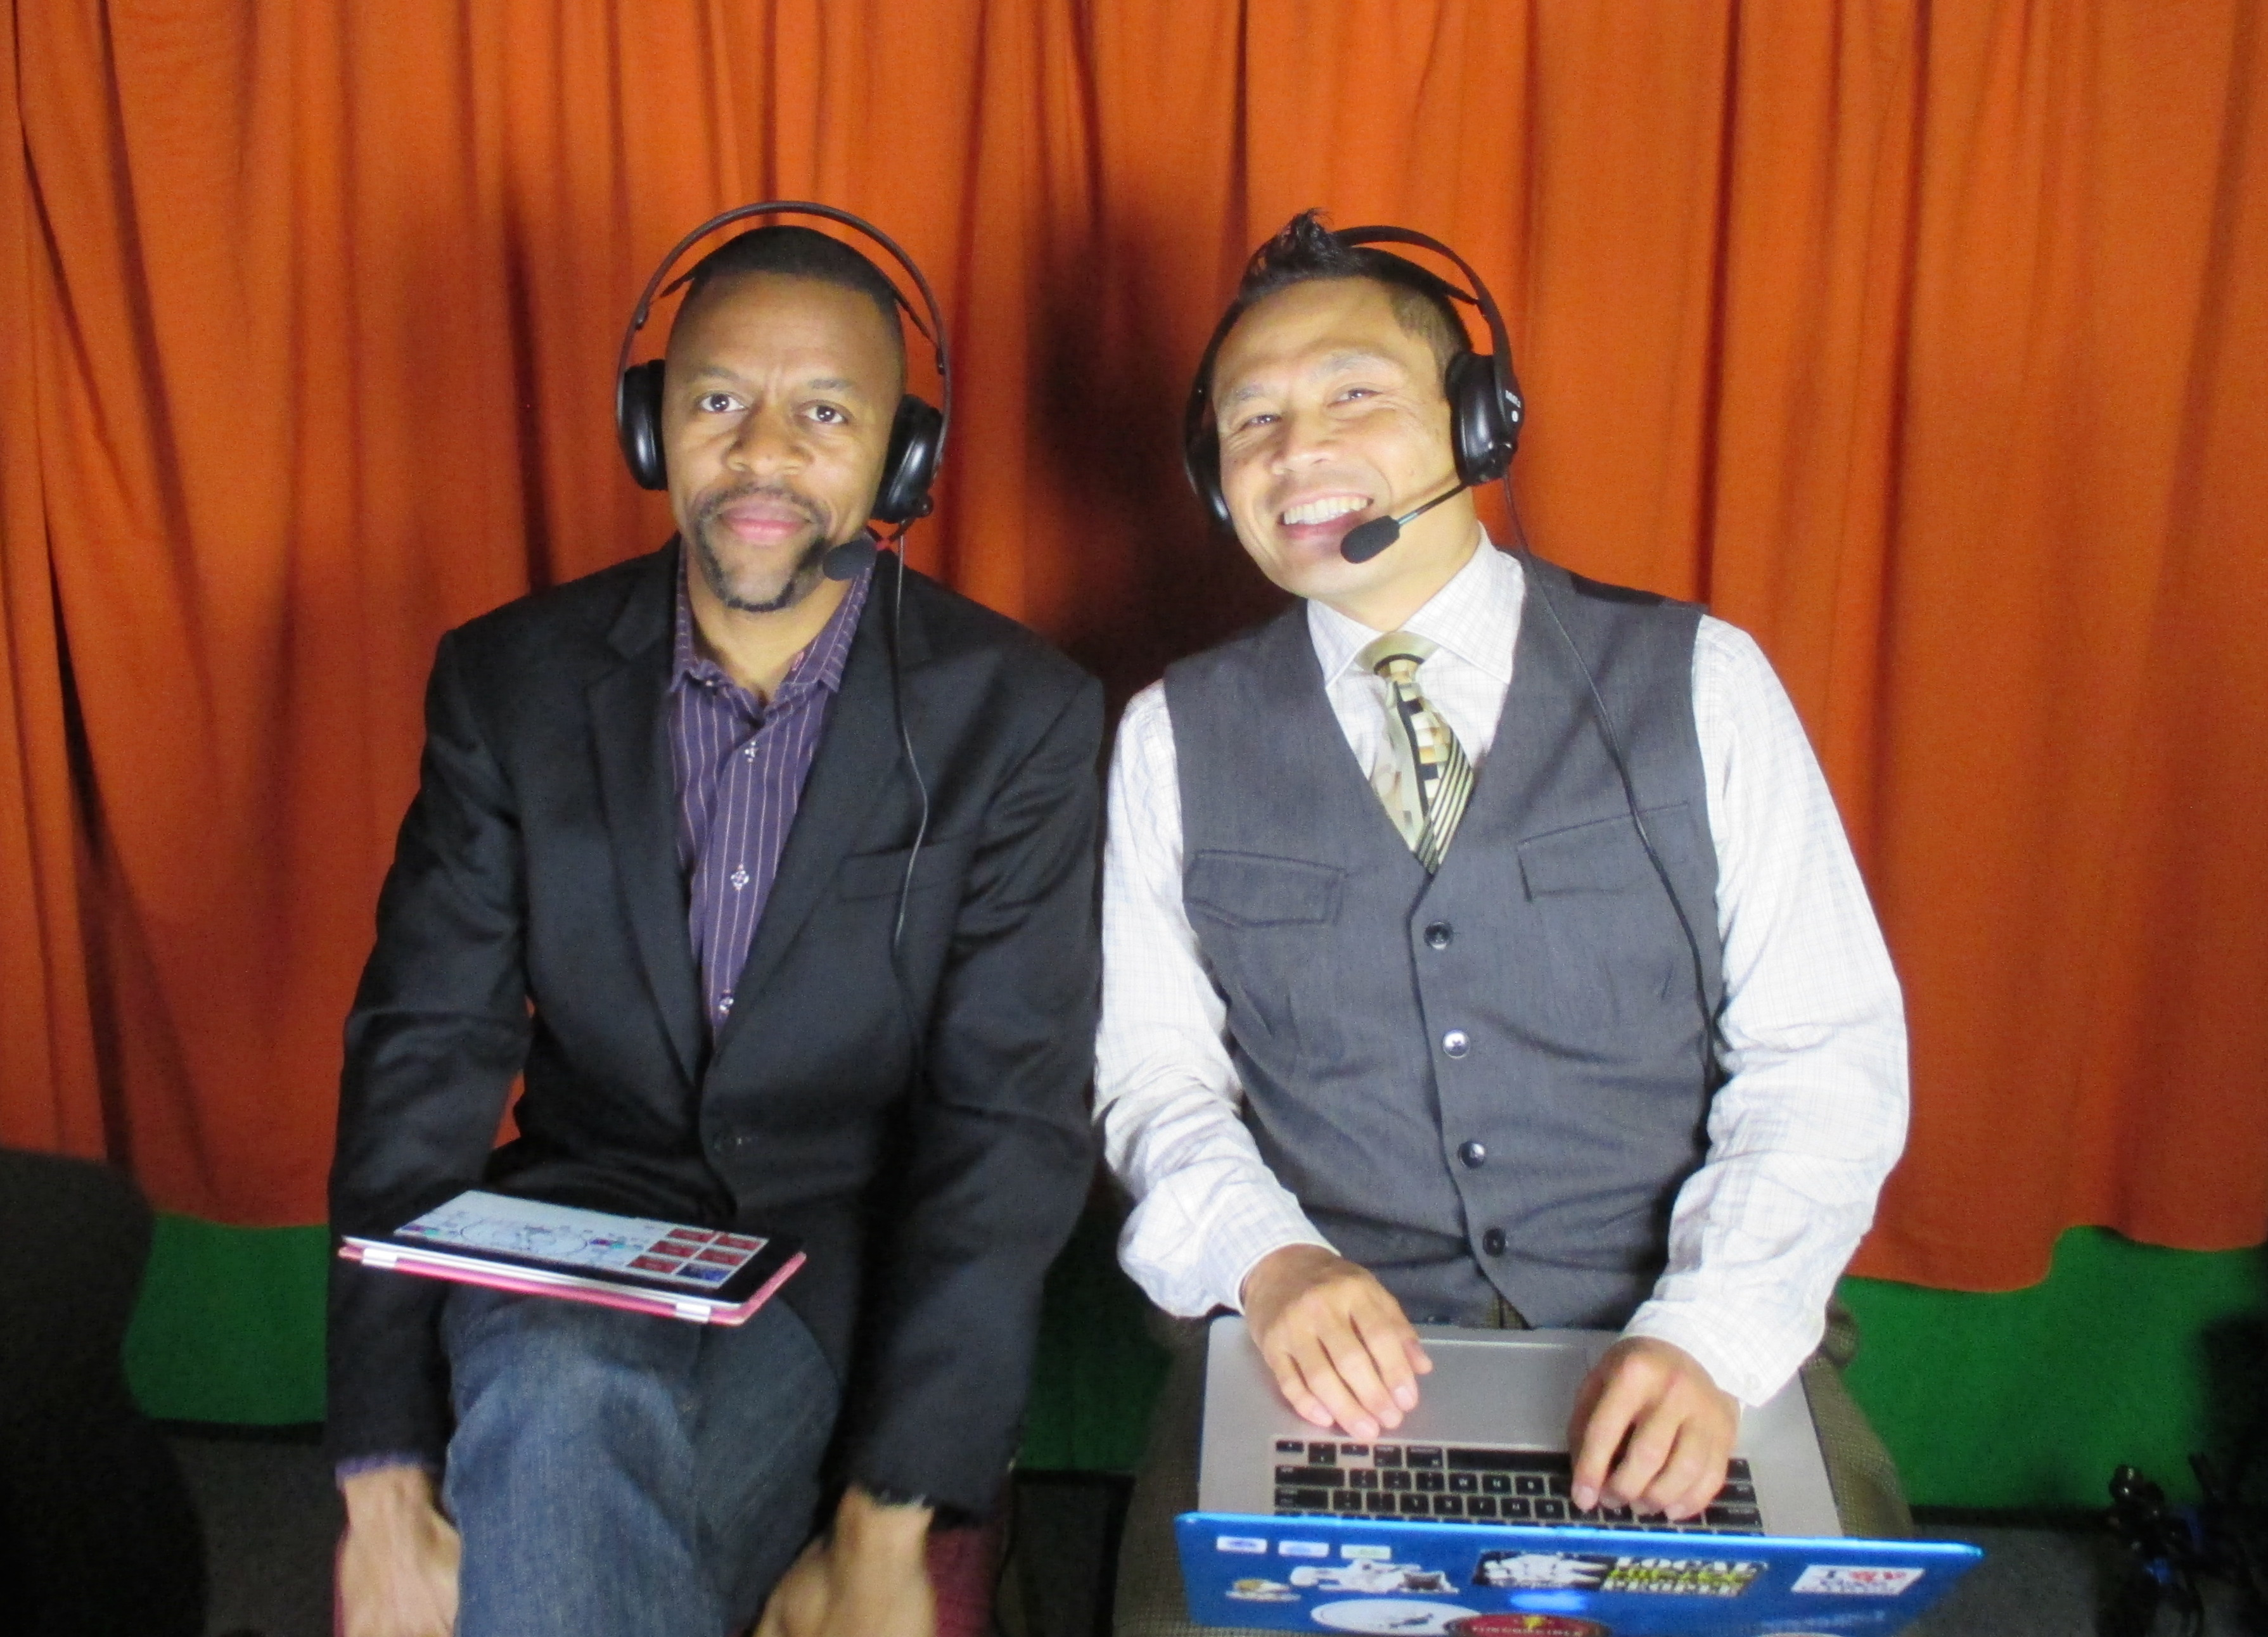 Rik and manu in the booth 2